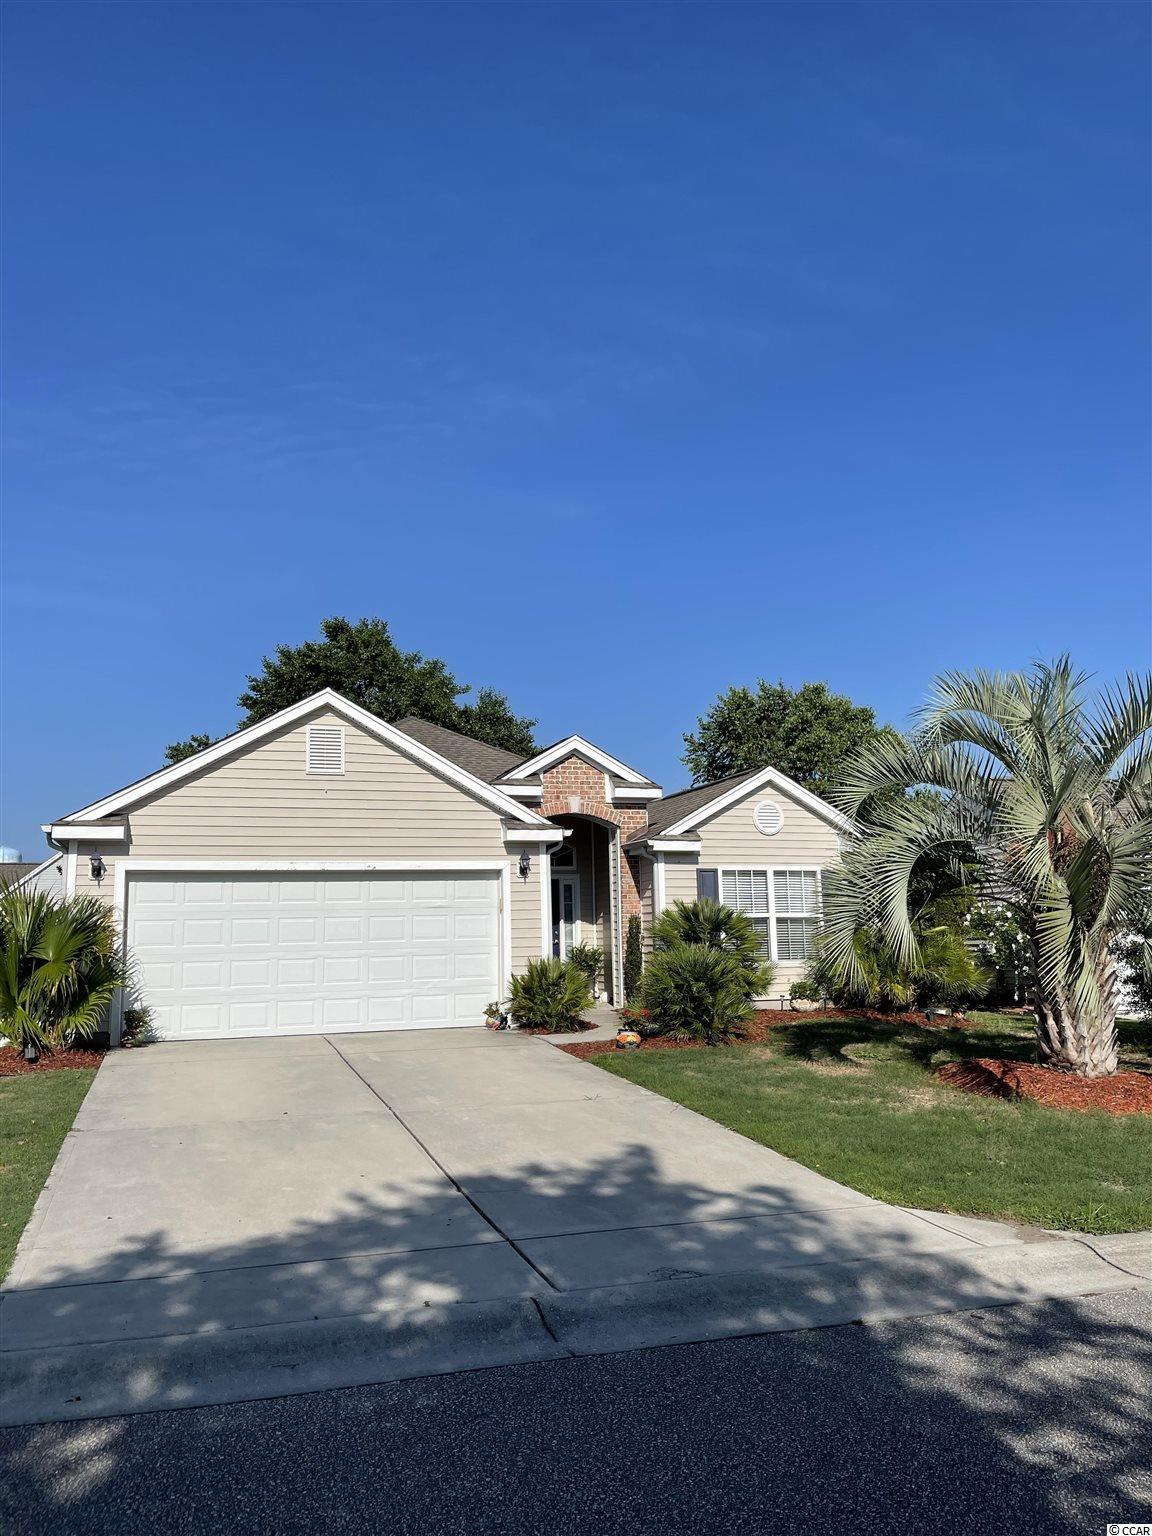 """Gorgeous three bedroom two bath home in """"The Farm"""". This home is in mint condition EXCEPT FOR THE FLOORING We priced according to being replaced . High ceilings, custom ceiling fans, large kitchen with breakfast nook, pantry, and plenty of cabinet space. Large master bedroom with a spacious walk in closet, double sinks, garden tub, and separate shower with 2 car garage. Haystack way is off the main road in the the Farm which offers a quiet setting. Very spacious lot with plenty of room behind you for a comfortable feel. With in minutes to the beach and is one of the best locations in all of Myrtle Beach. Super close to all the restaurants, shopping, entertainment, golf, and everything you could possibly need for your home at the beach. If you are looking for the perfect place to call home here at the beach, this is it will not last."""